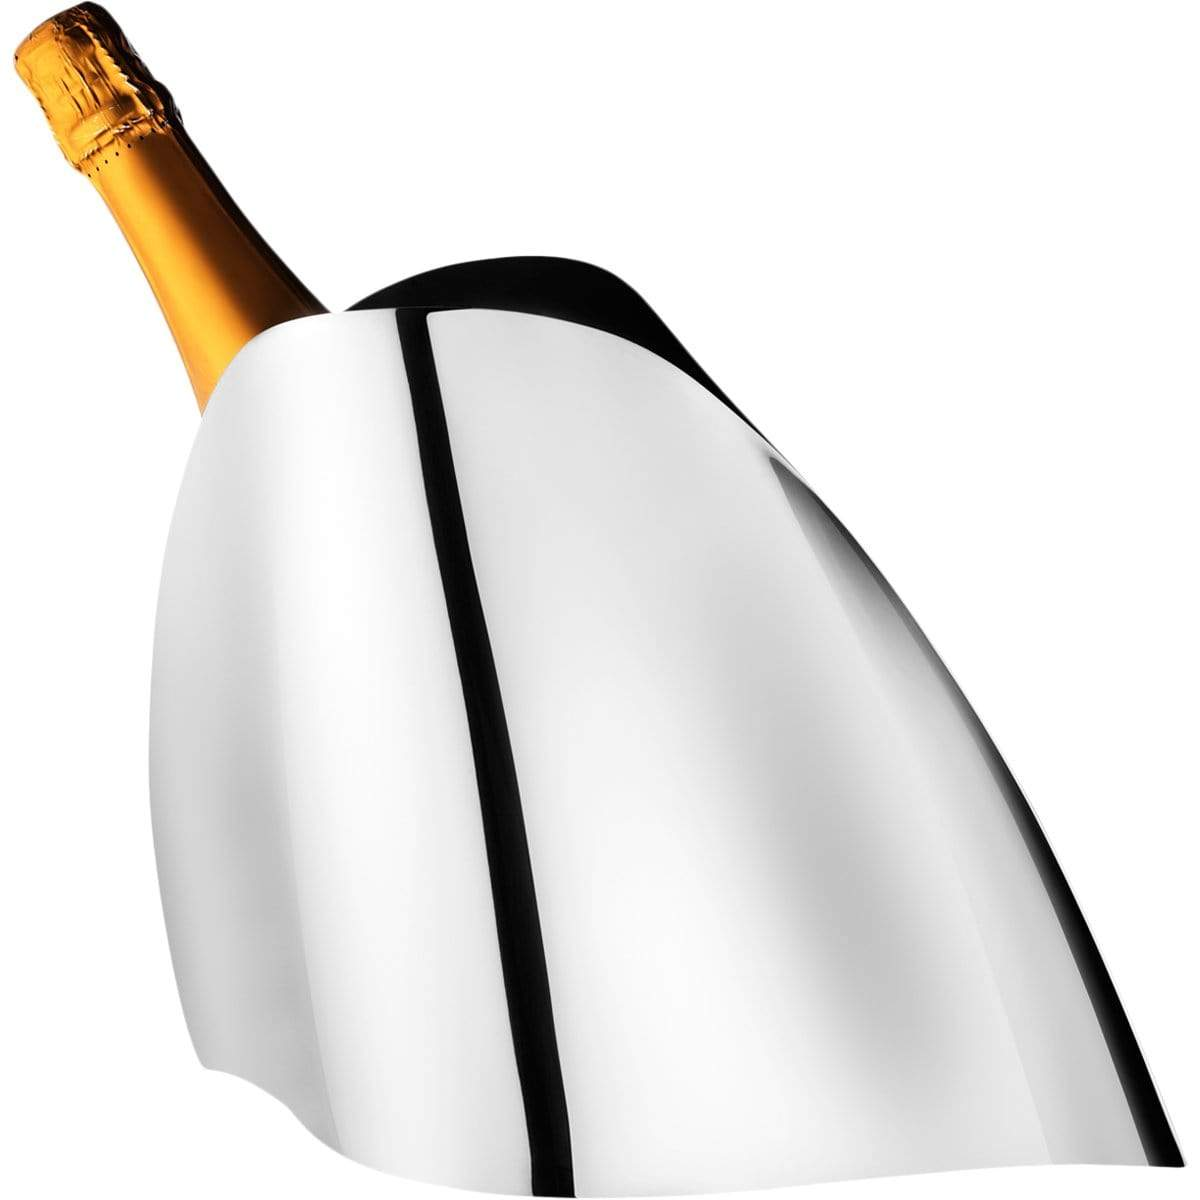 Indulgence Stainless Steel Champagne Cooler